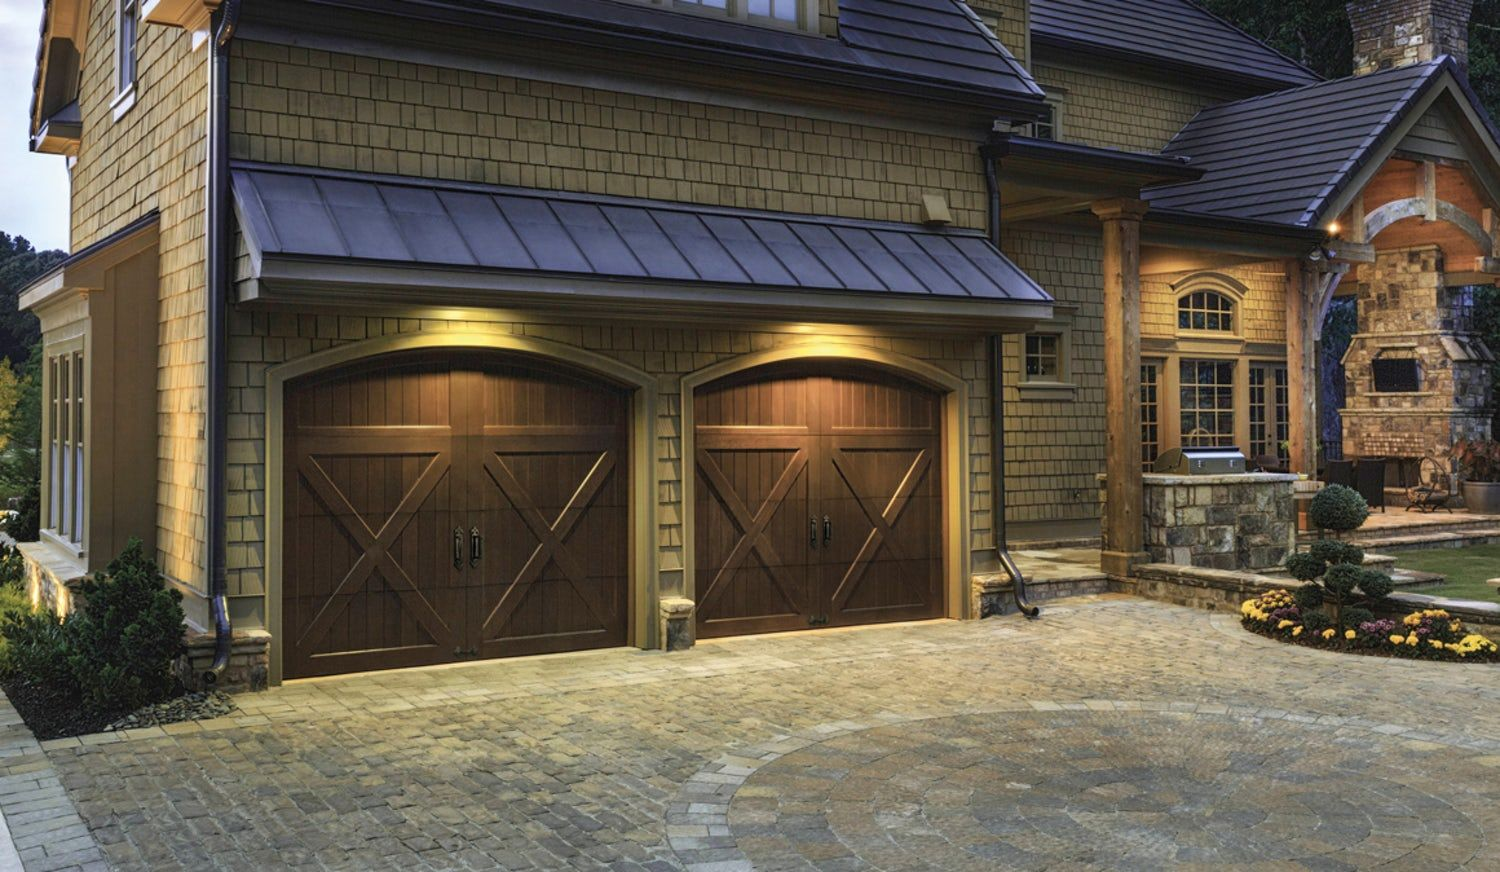 14 Curb Appeal Tips From The Brick Batten Pros Blog Brick Batten In 2020 Garage Door Design Carriage House Garage Doors Garage Doors